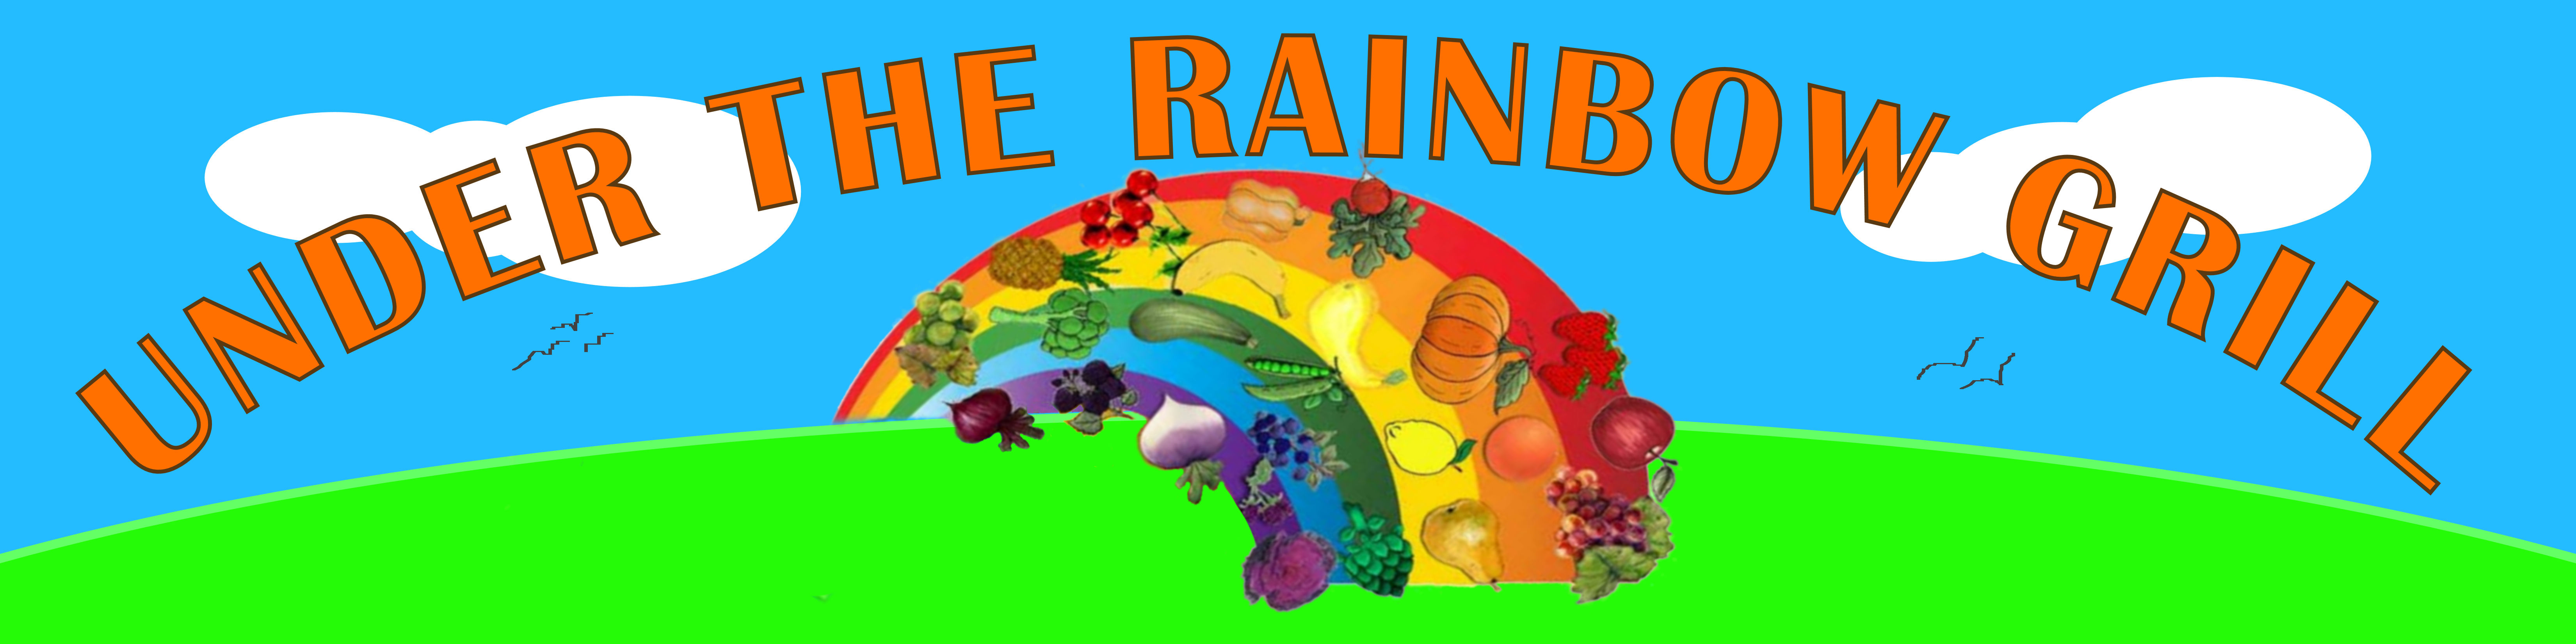 under the rainbow grill banner 02 1x6